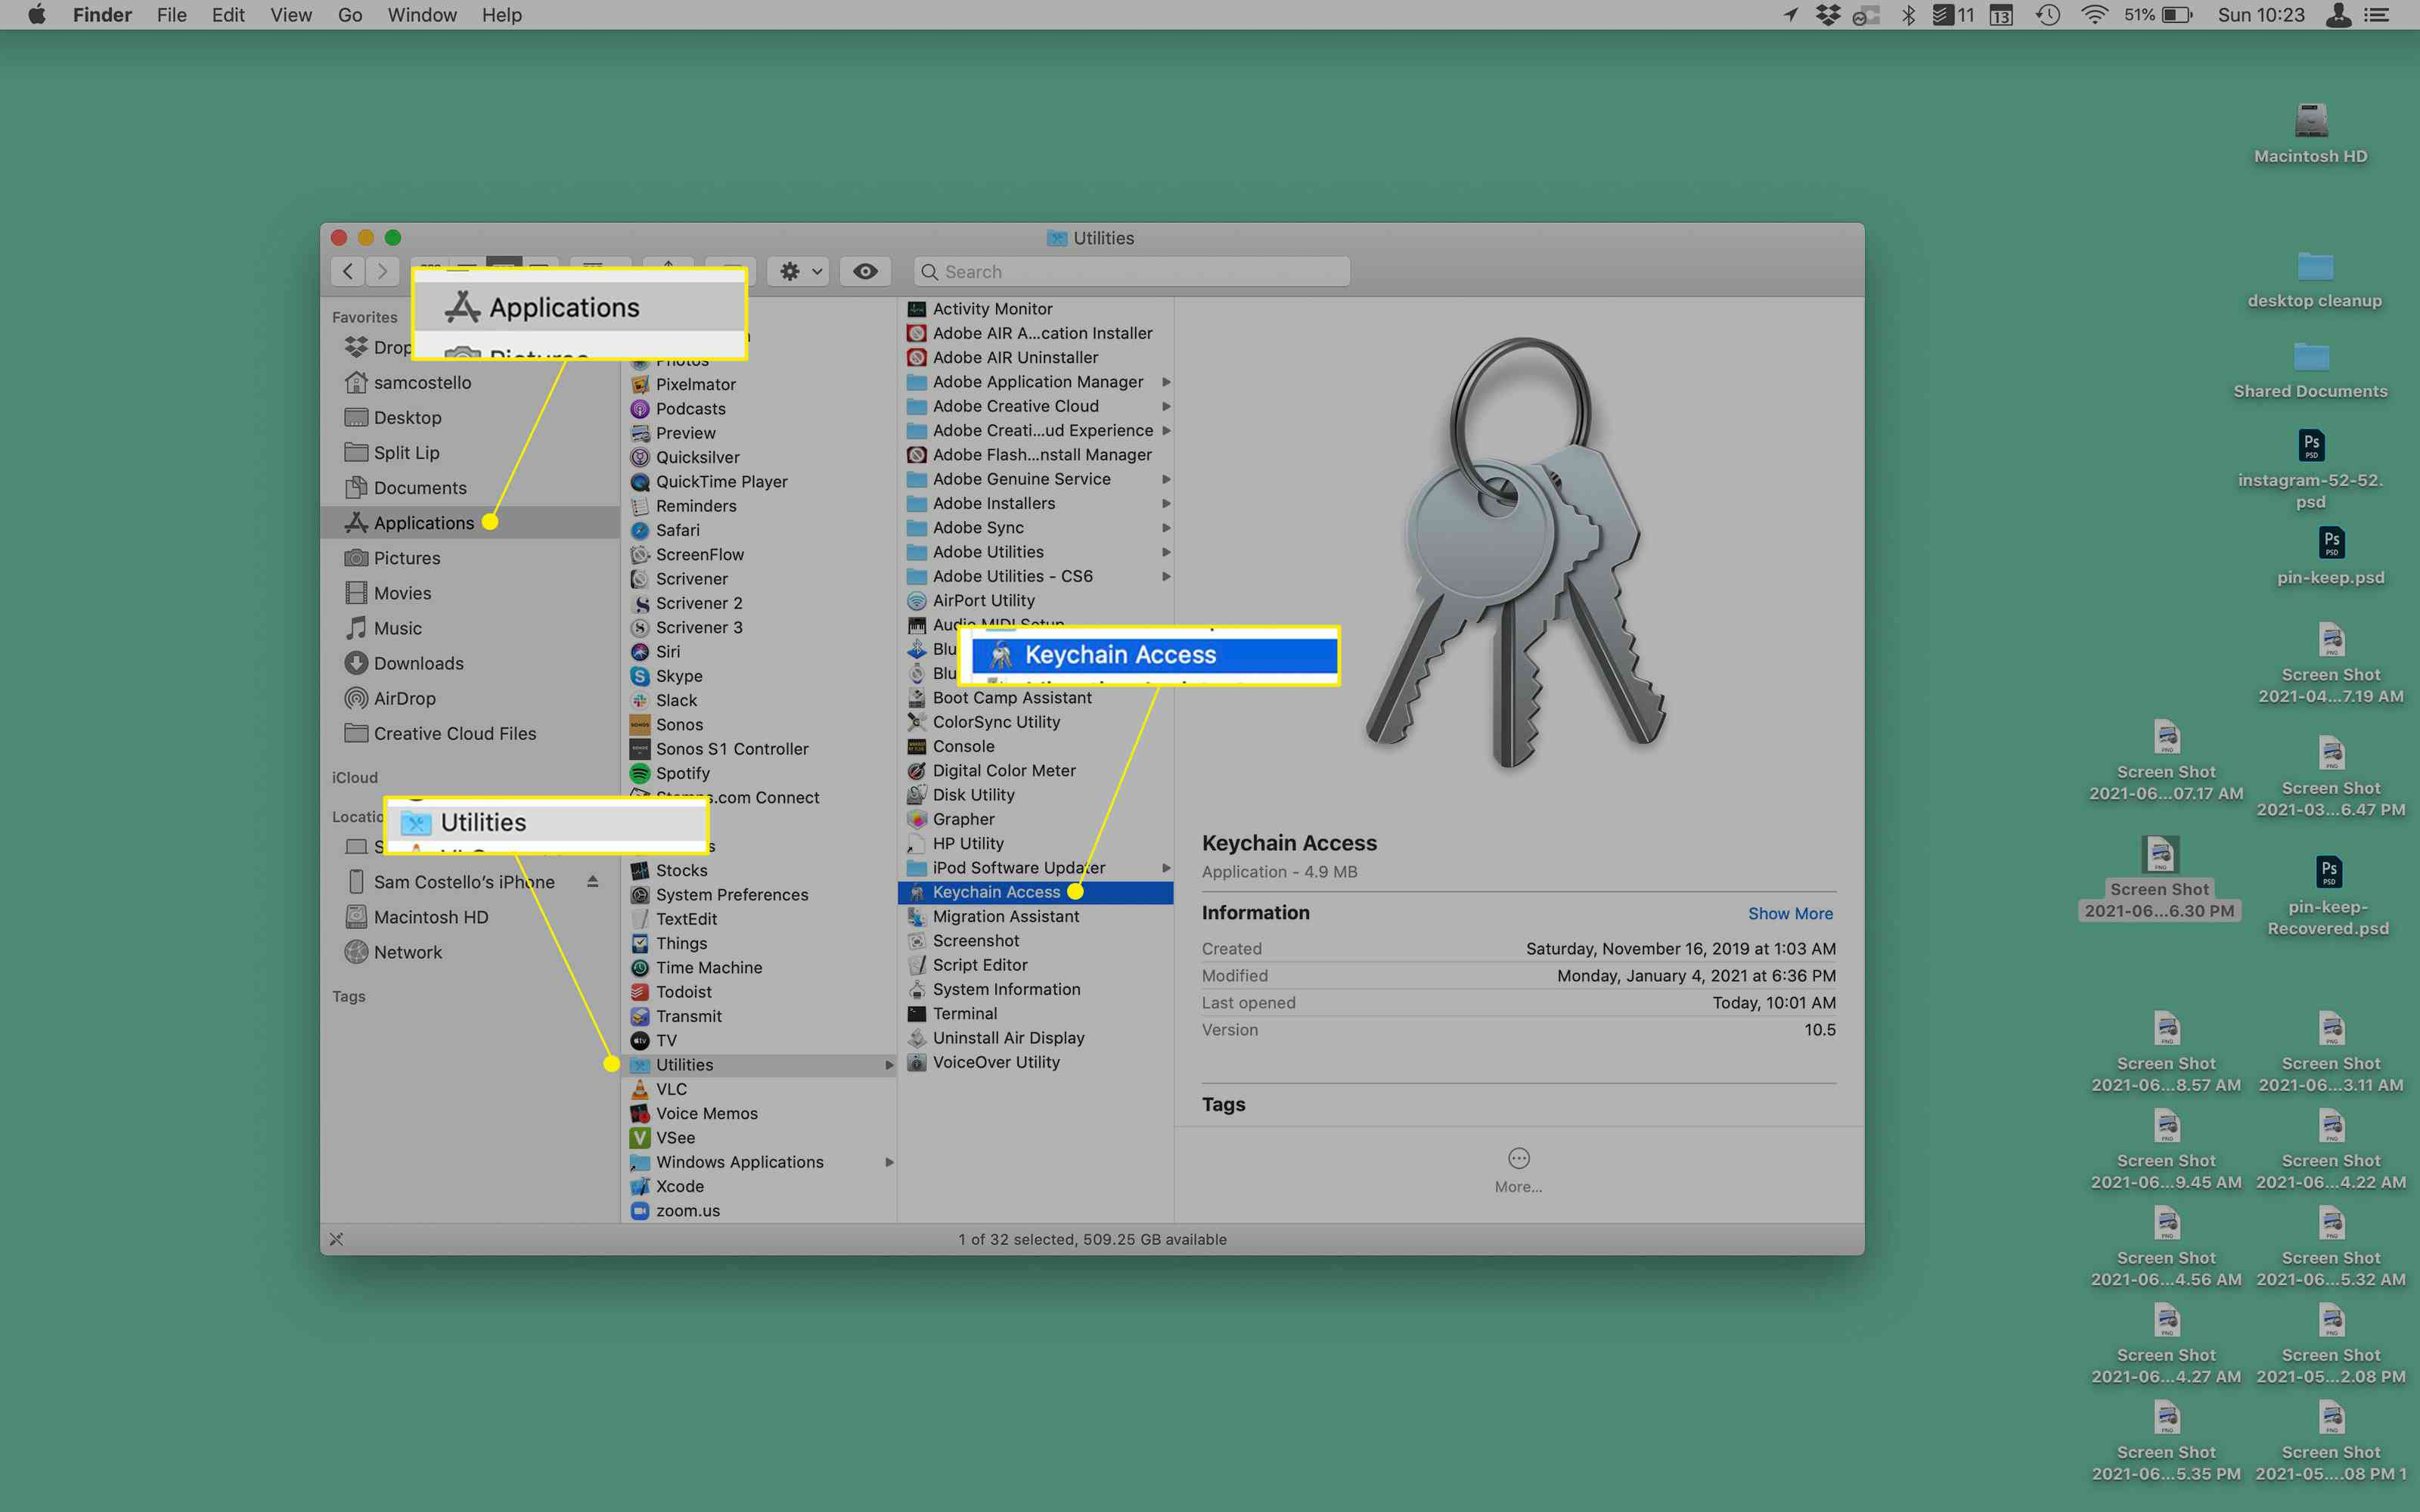 Mac desktop with the Utilities folder open and Keychain Access highlighted